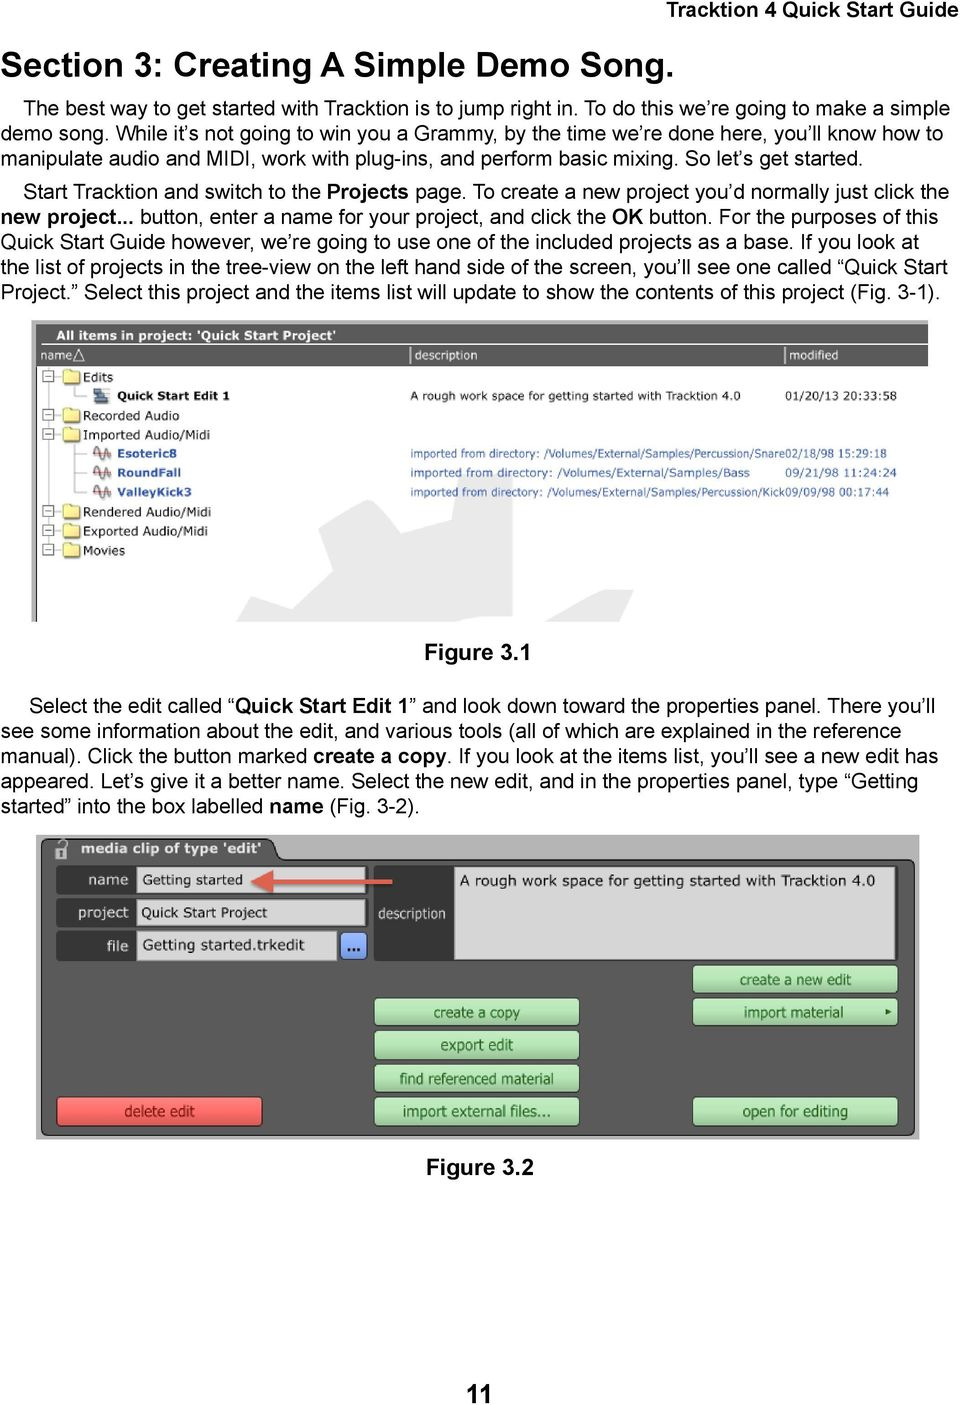 Tracktion 4 Quick Start Guide - PDF